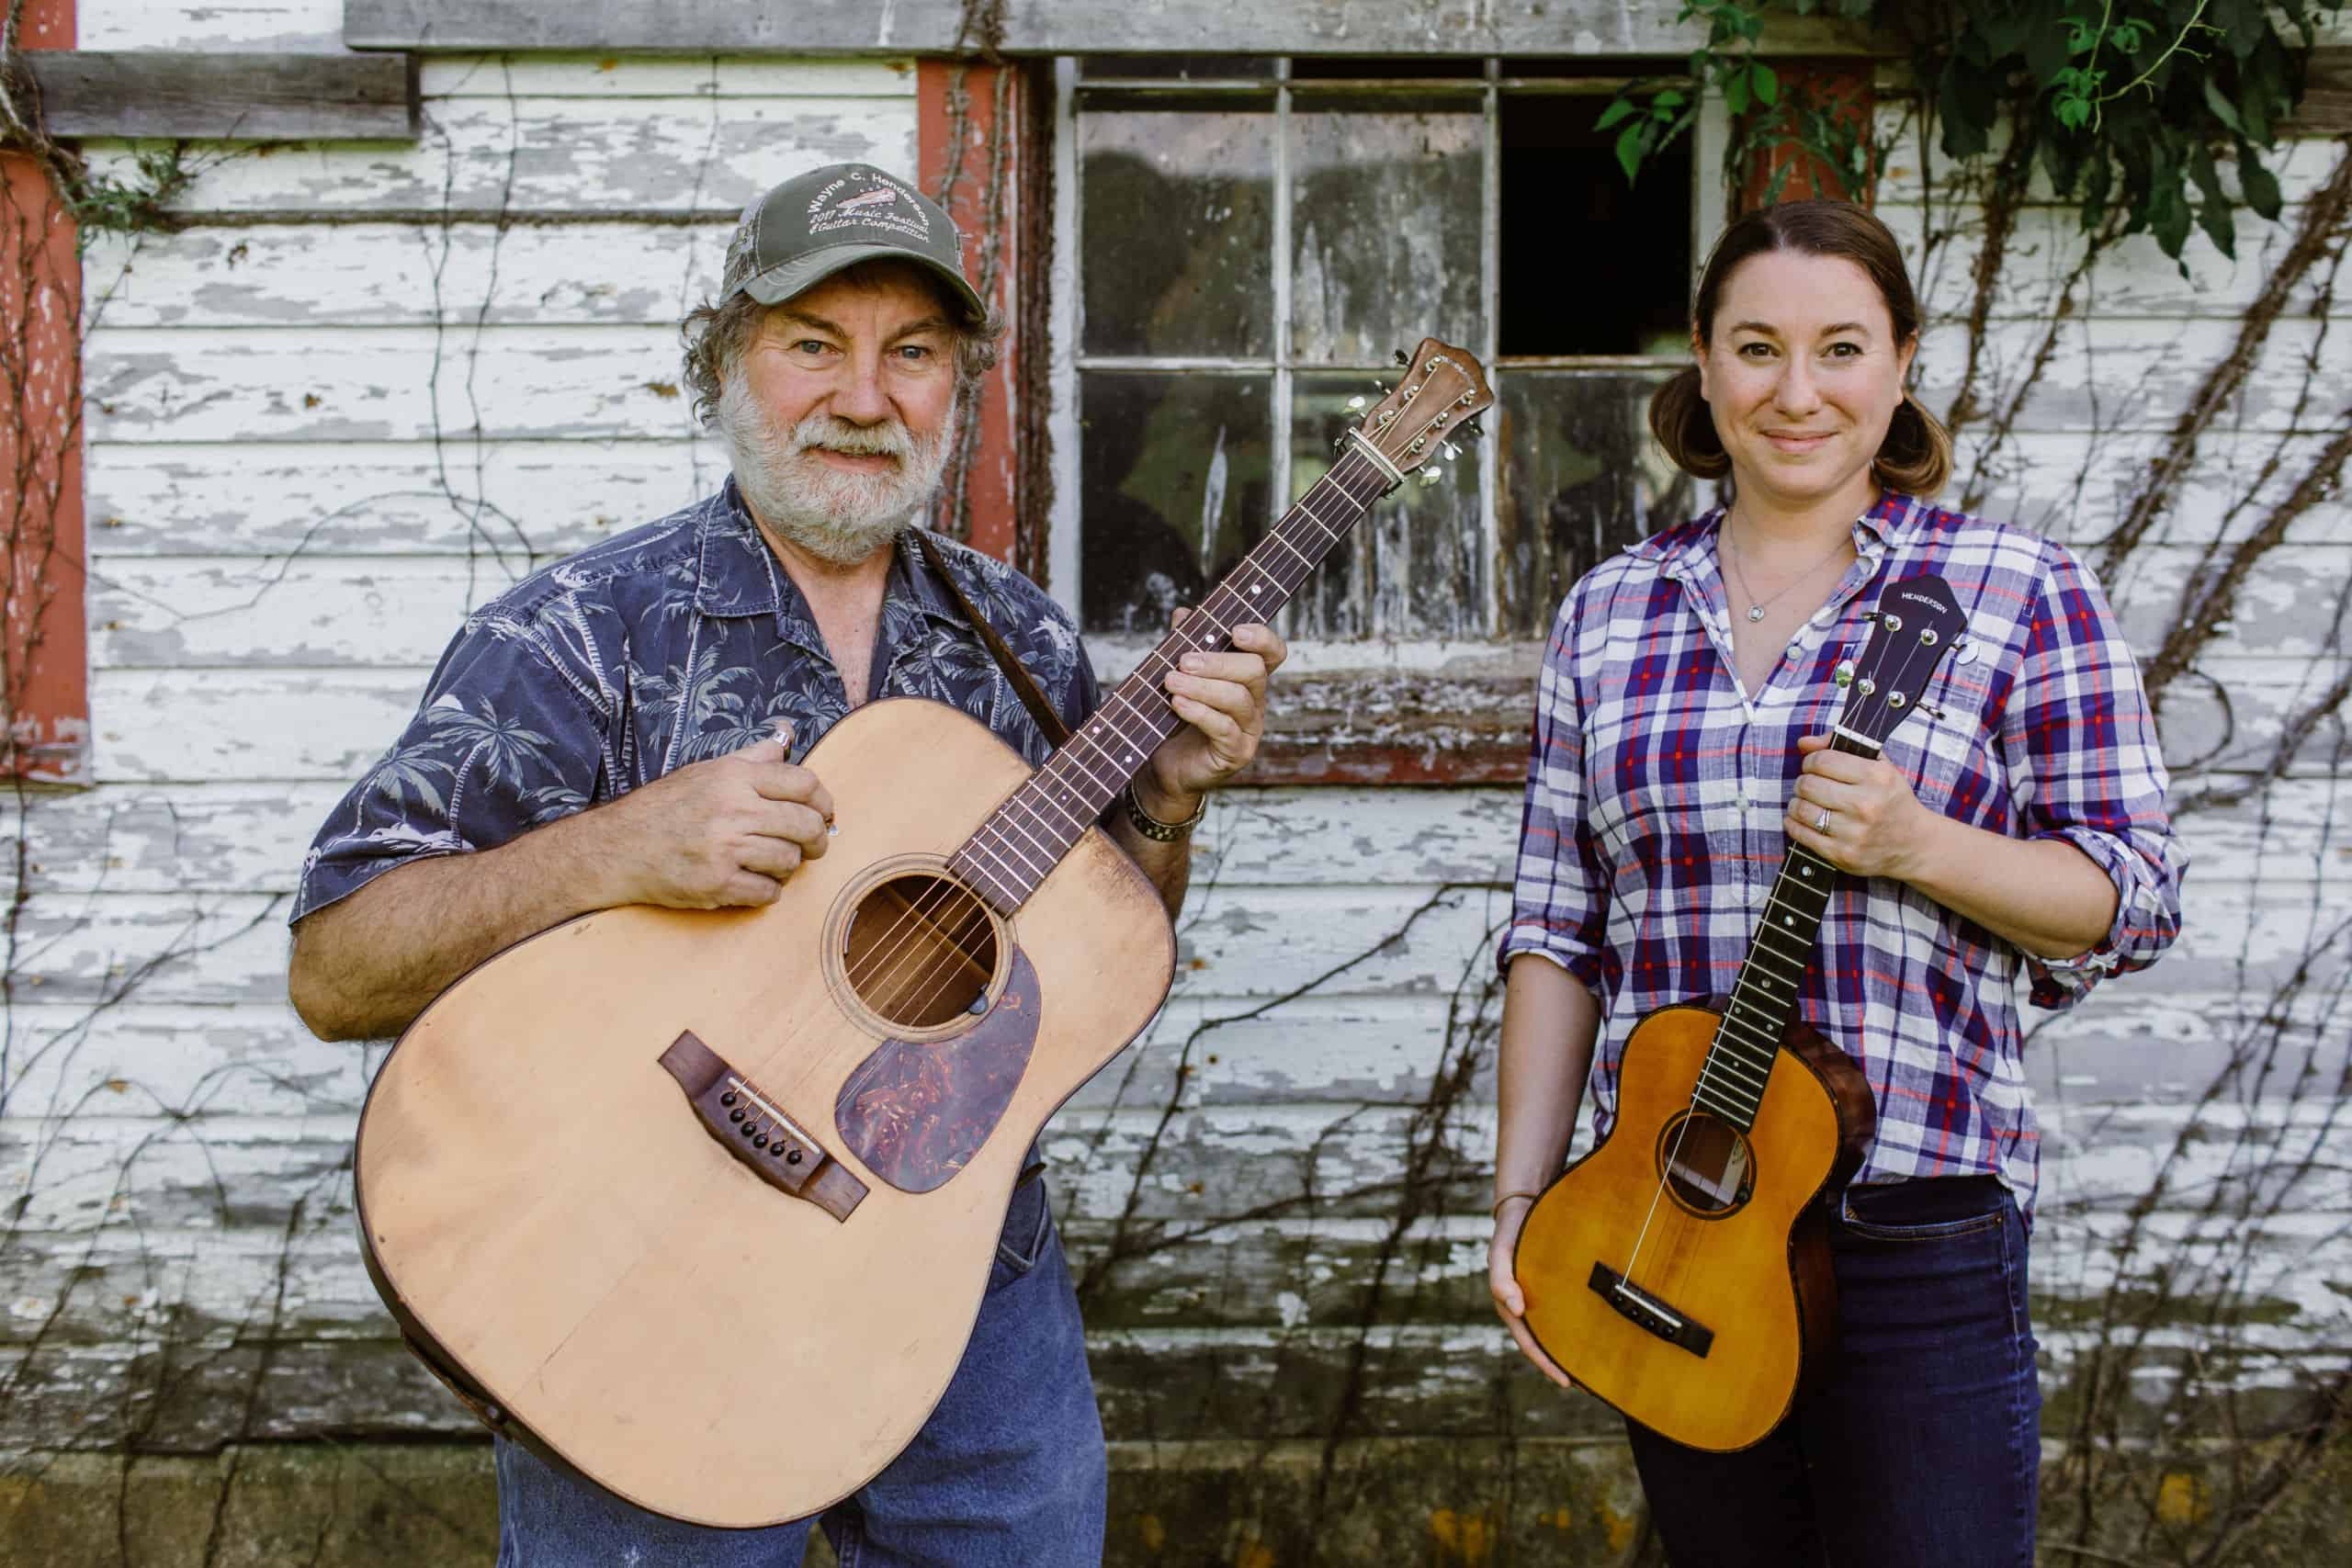 Virginia guitar makers, Wayne Henderson, Jayne Henderson